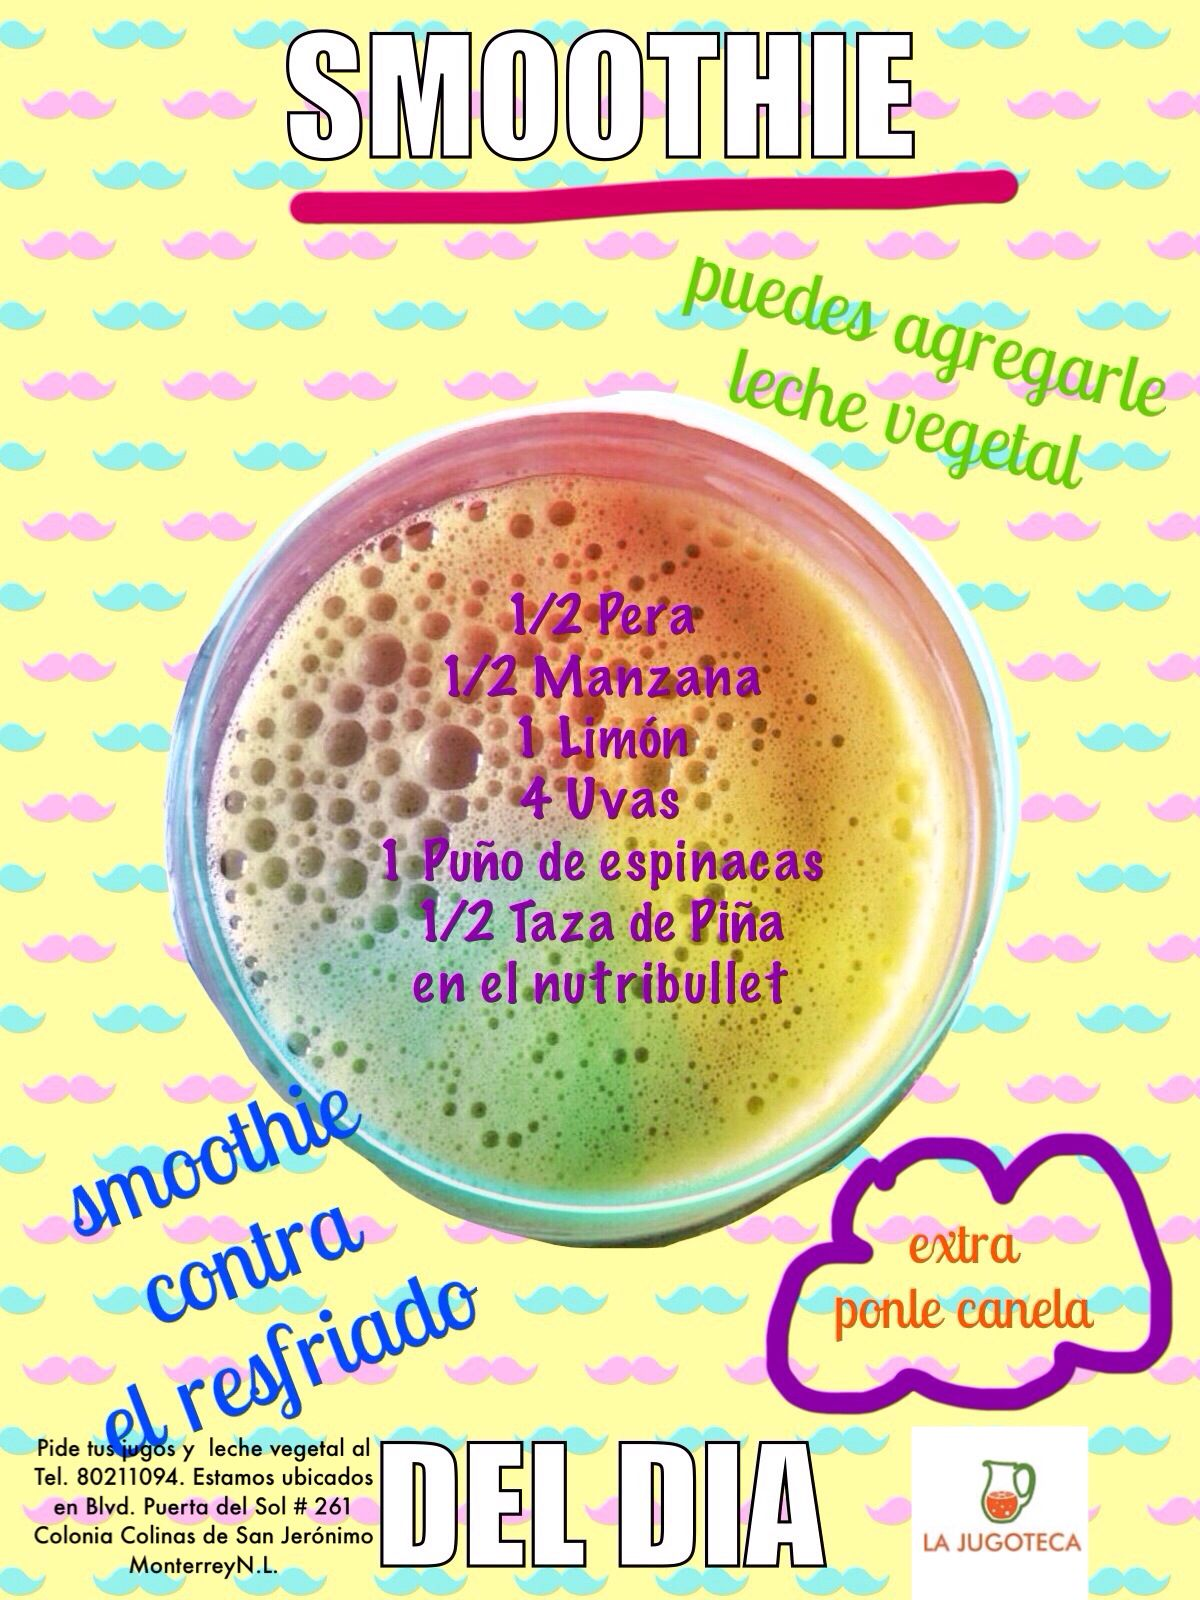 Beneficios de los smoothies